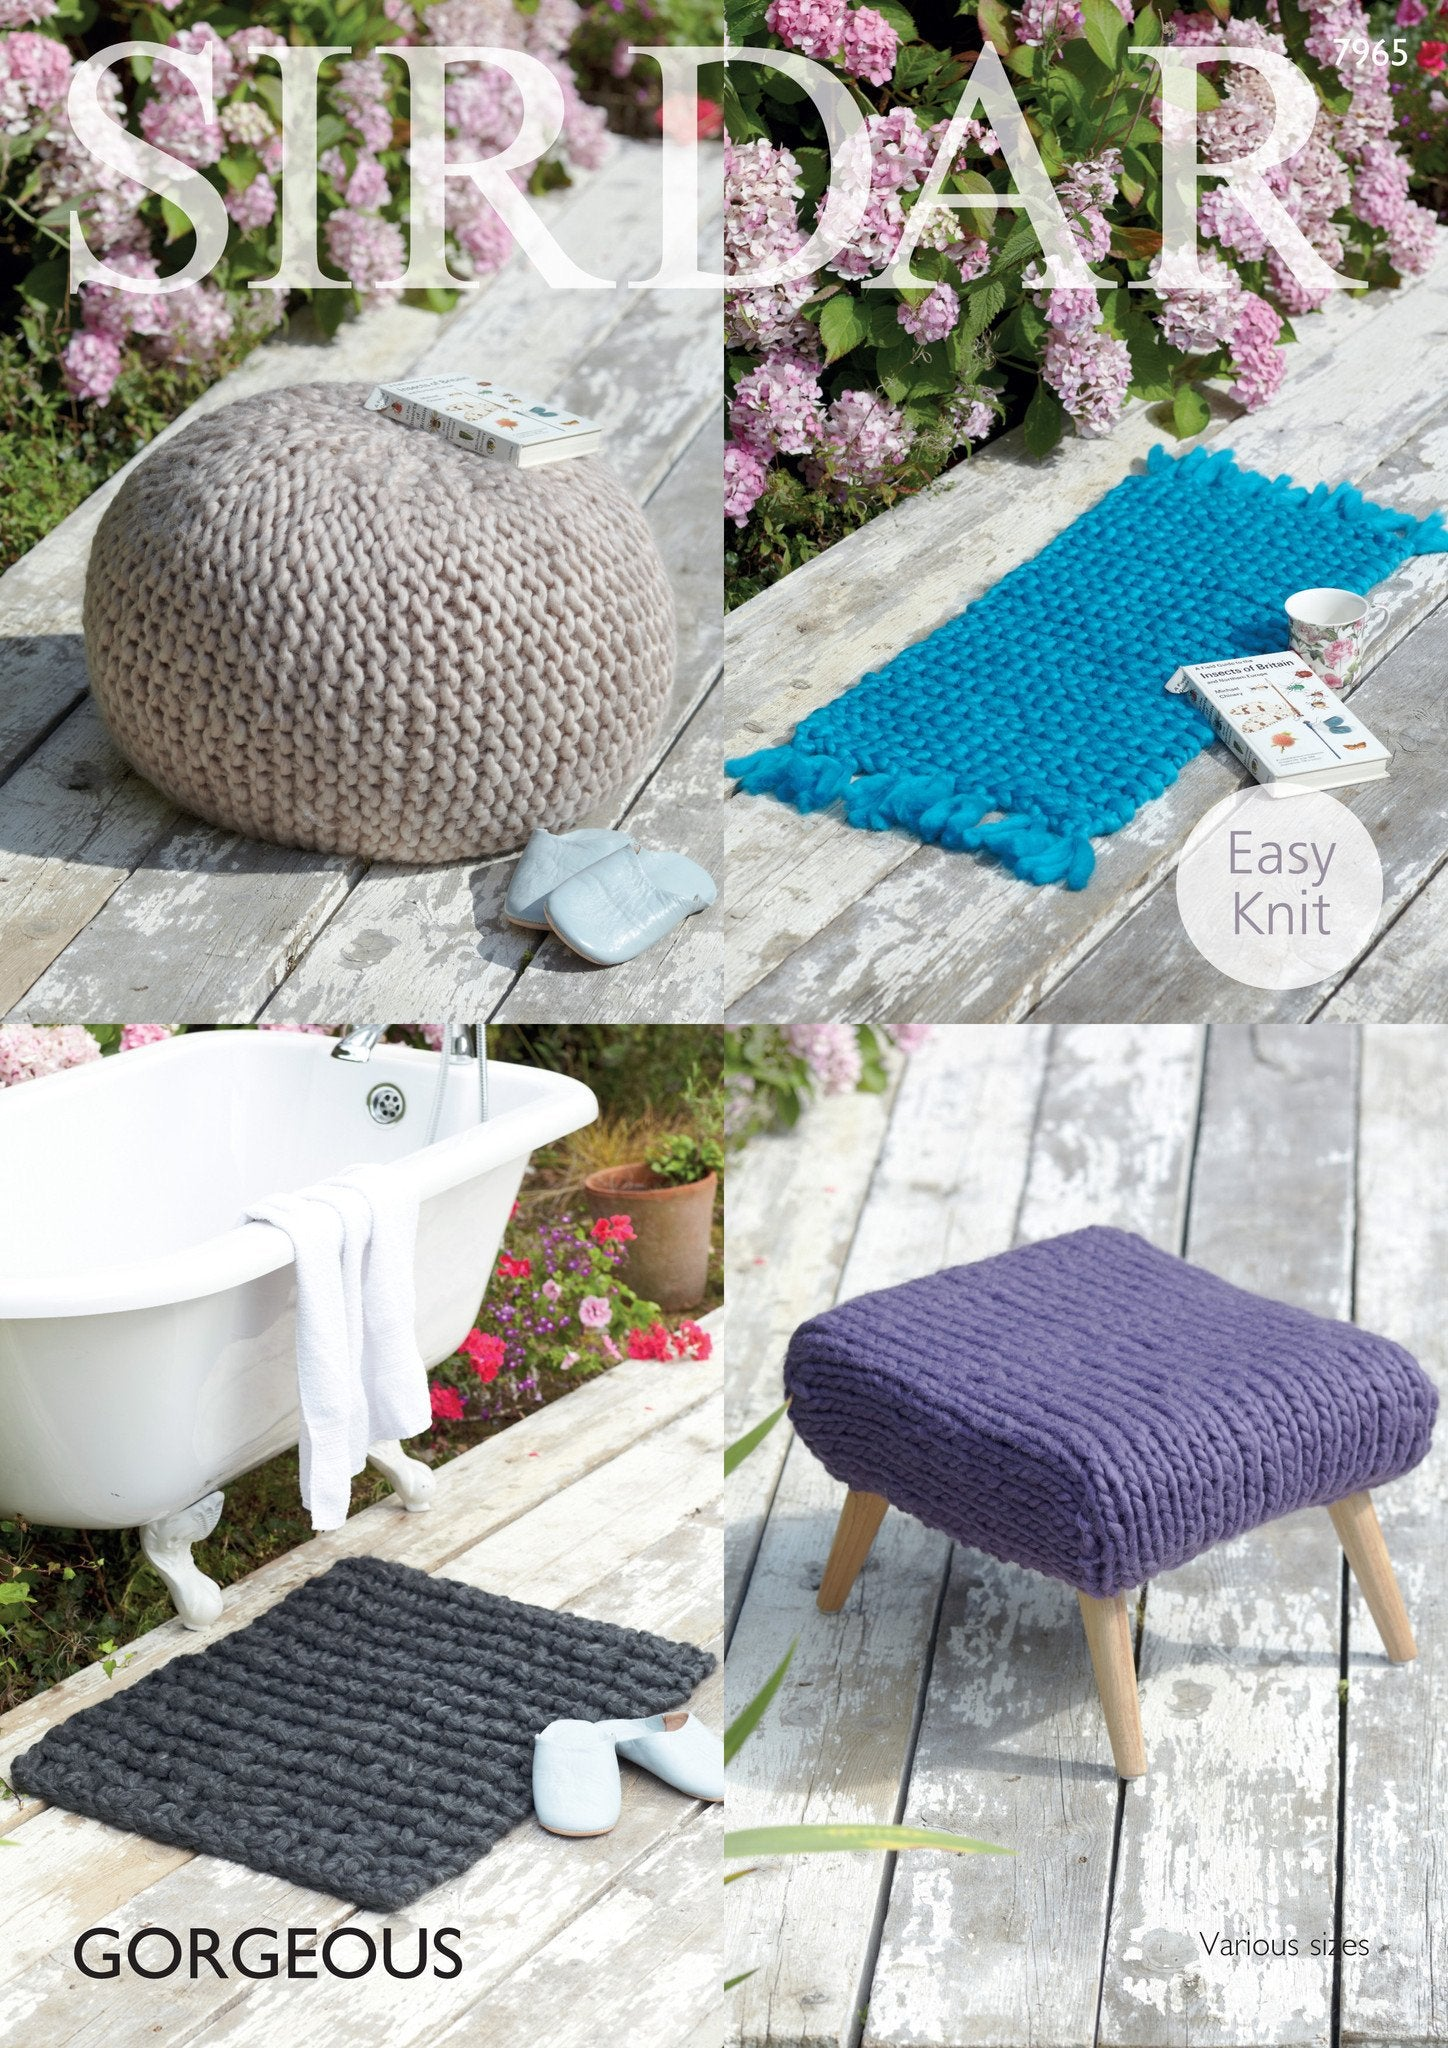 Foot Stool Covers and Rugs in Sirdar Gorgeous (7965) & Foot Stool Covers and Rugs in Sirdar Gorgeous (7965) Digital ... islam-shia.org